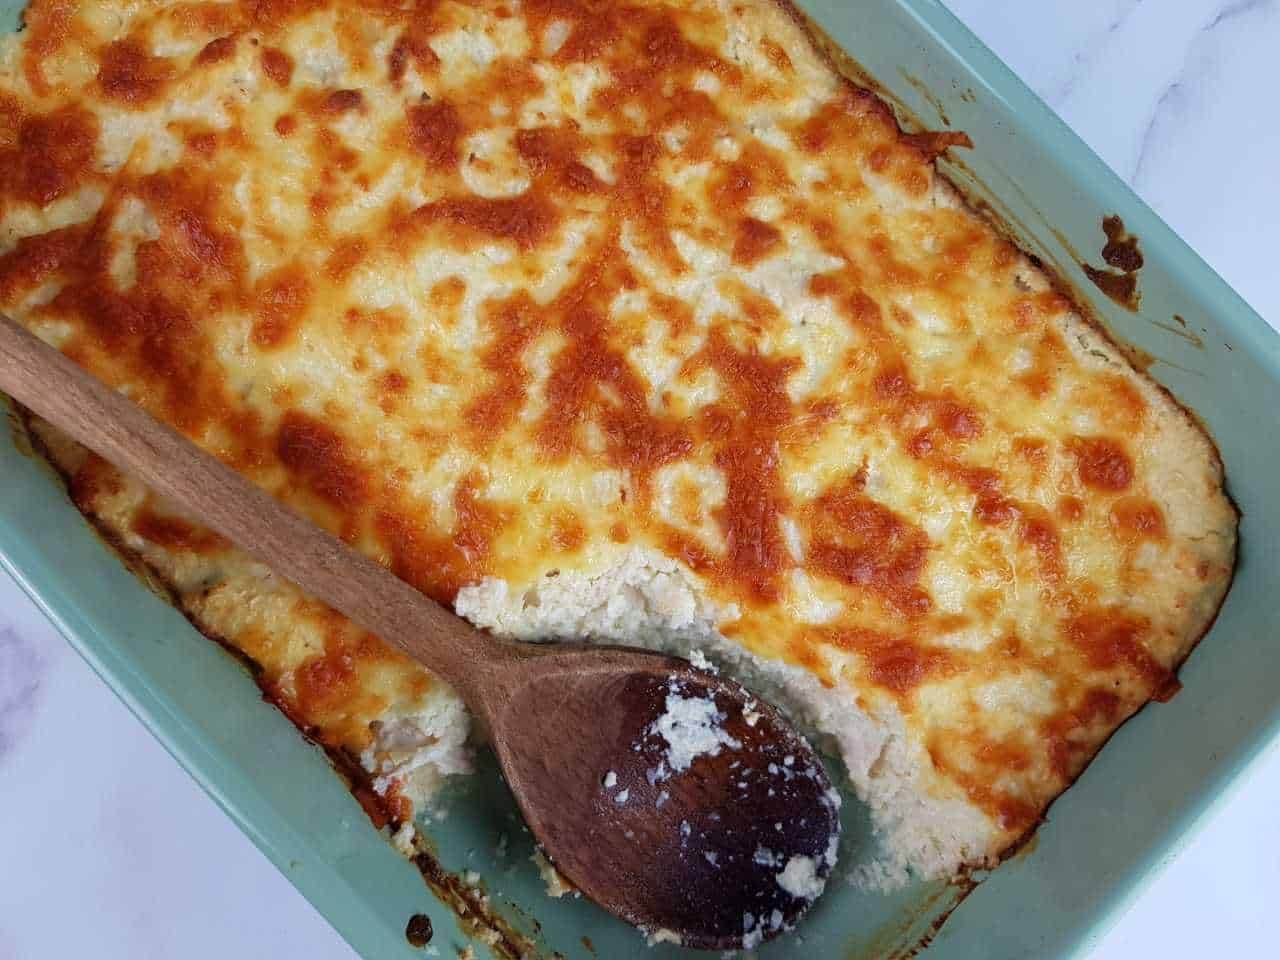 Cauliflower rice and chicken casserole in a blue casserole dish with a wooden spoon.